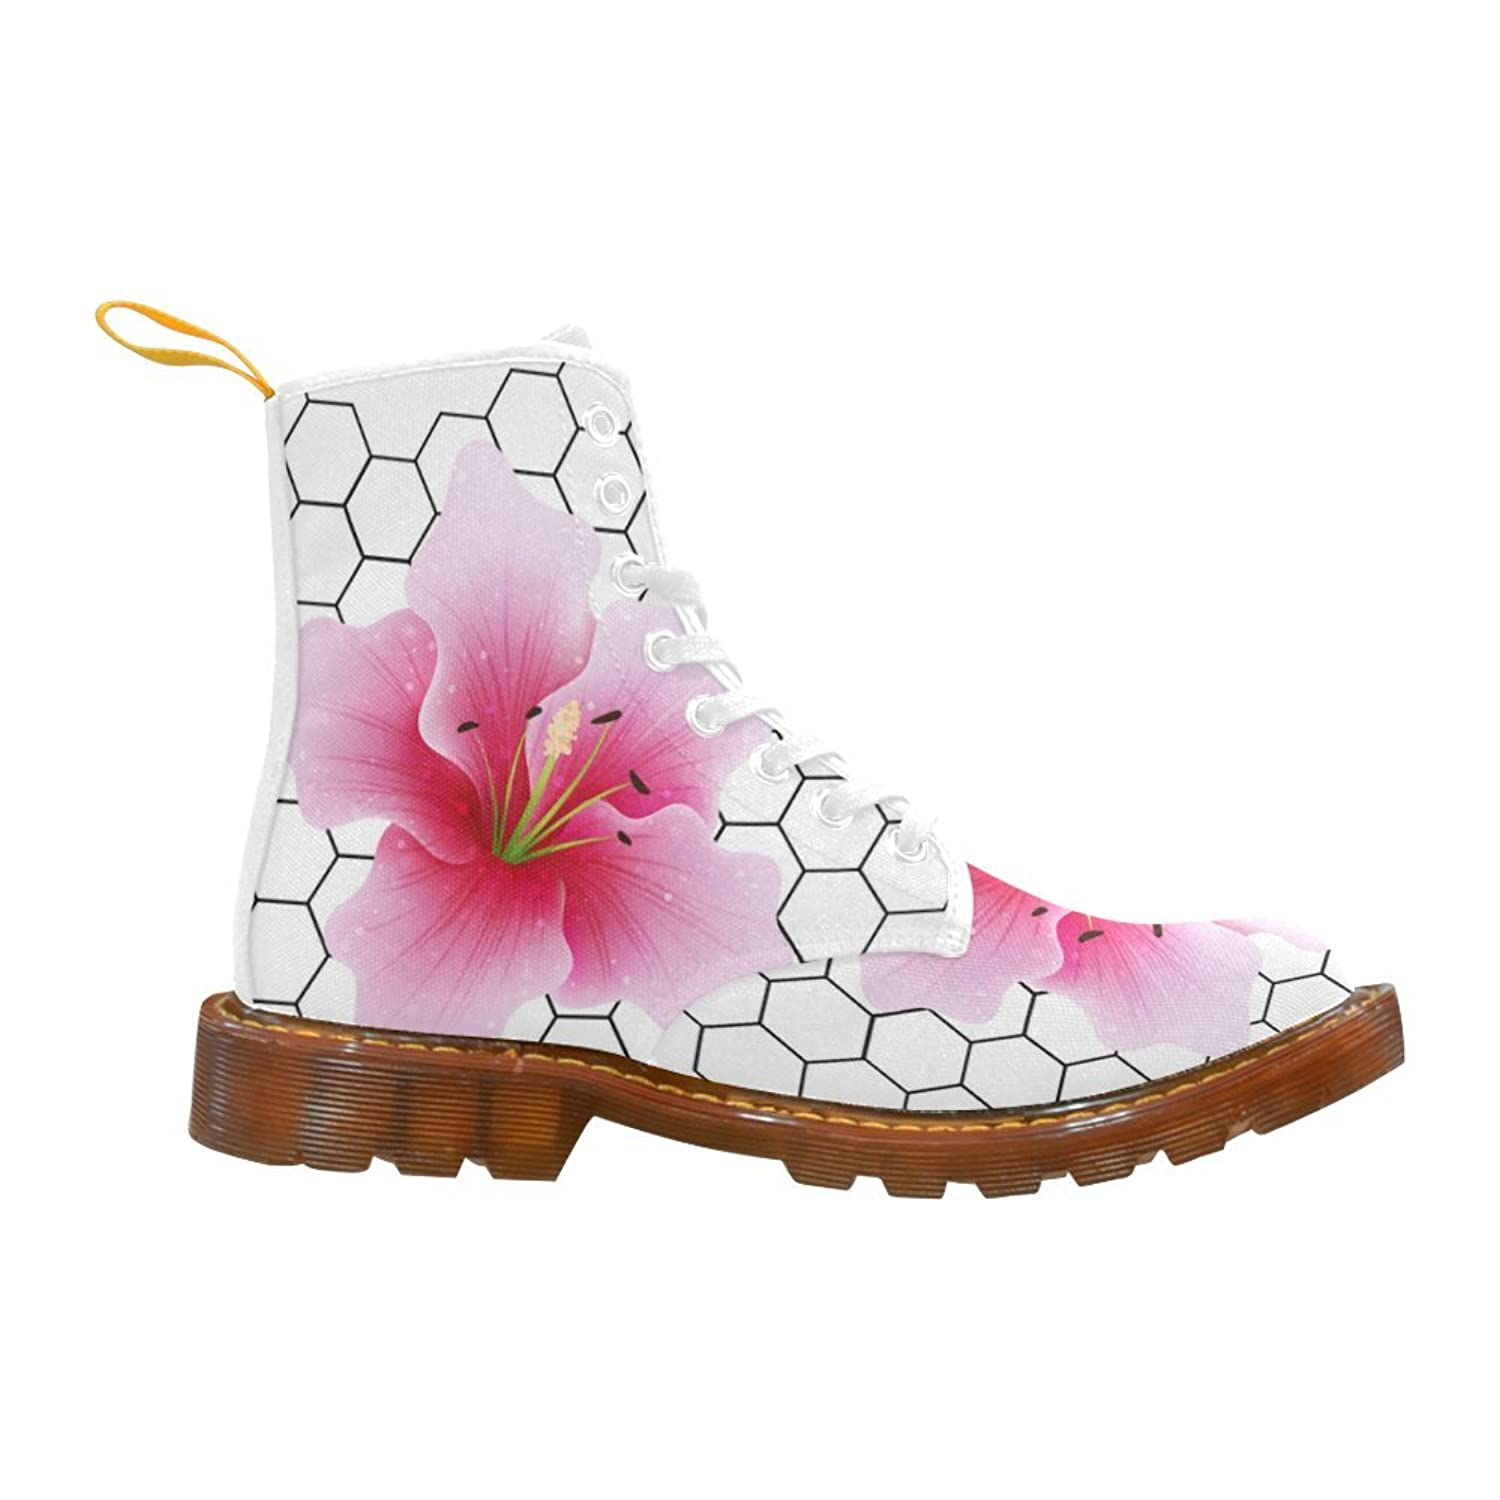 Shoes Pink Flower On Honeycomb Grid Hexagon Patterns Lace Up Martin Boots For Women